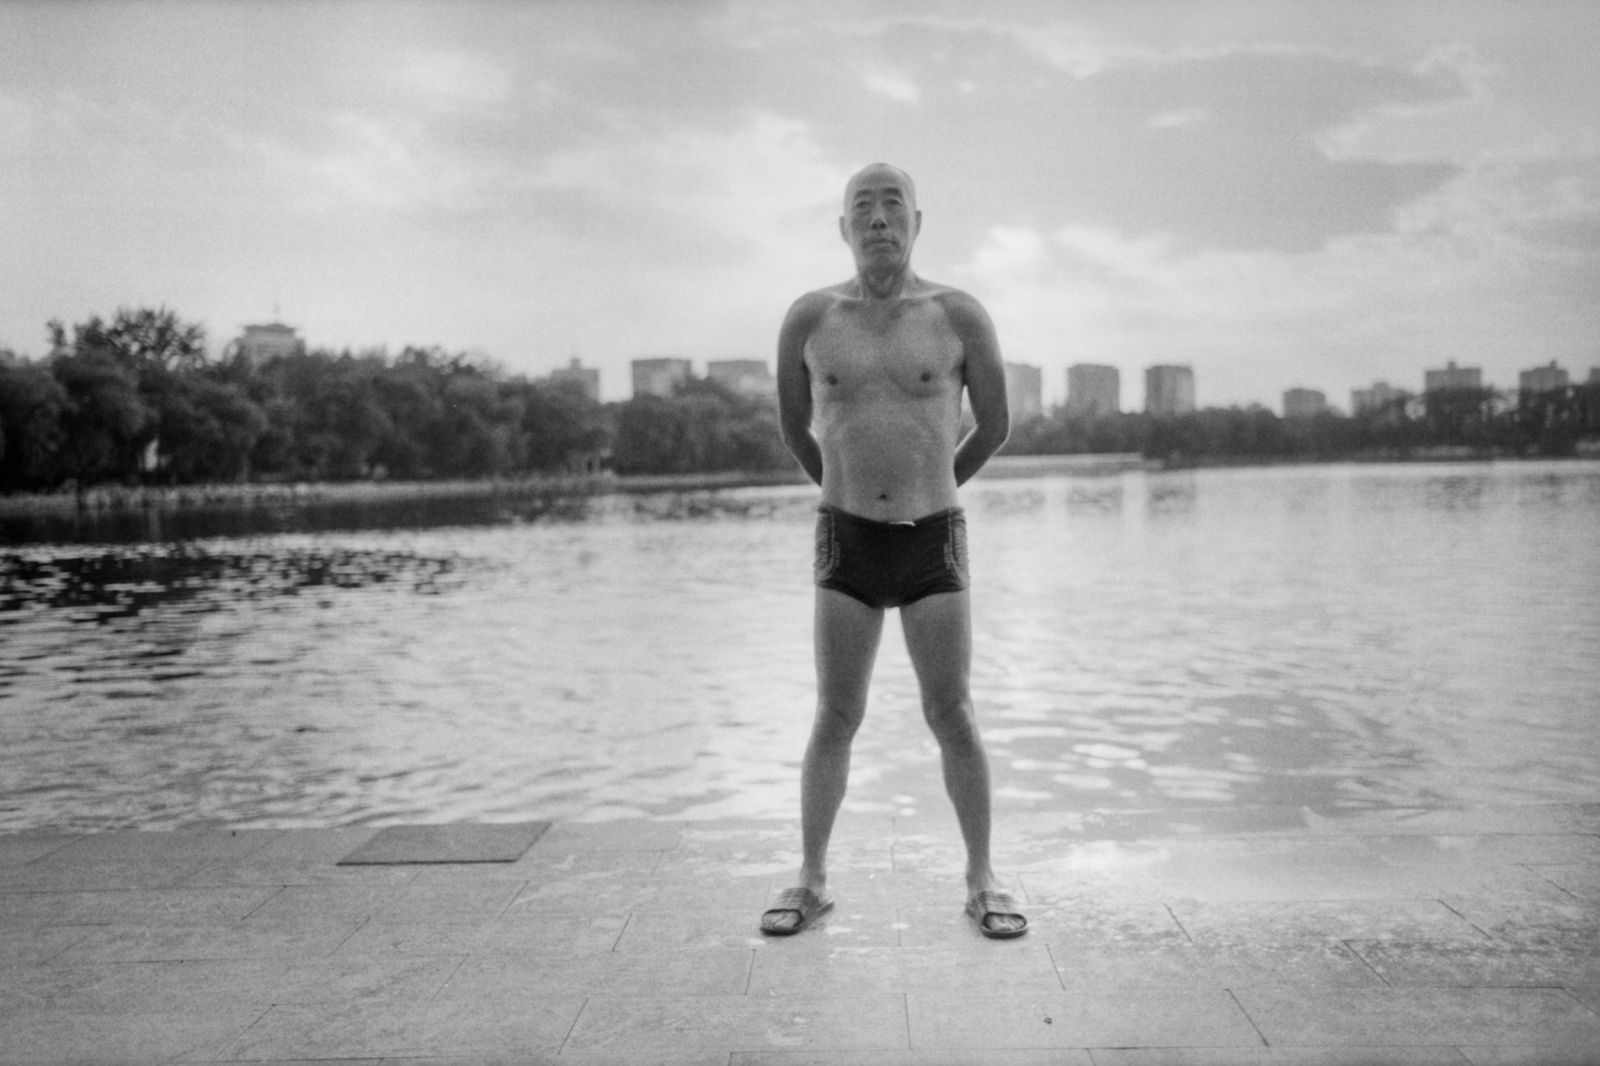 A man landed after swimming in the lake in Yuyuantan park. He offered me to shake hands with a big smile when he noticed that I was Japanese.  Beijing, China. 2015